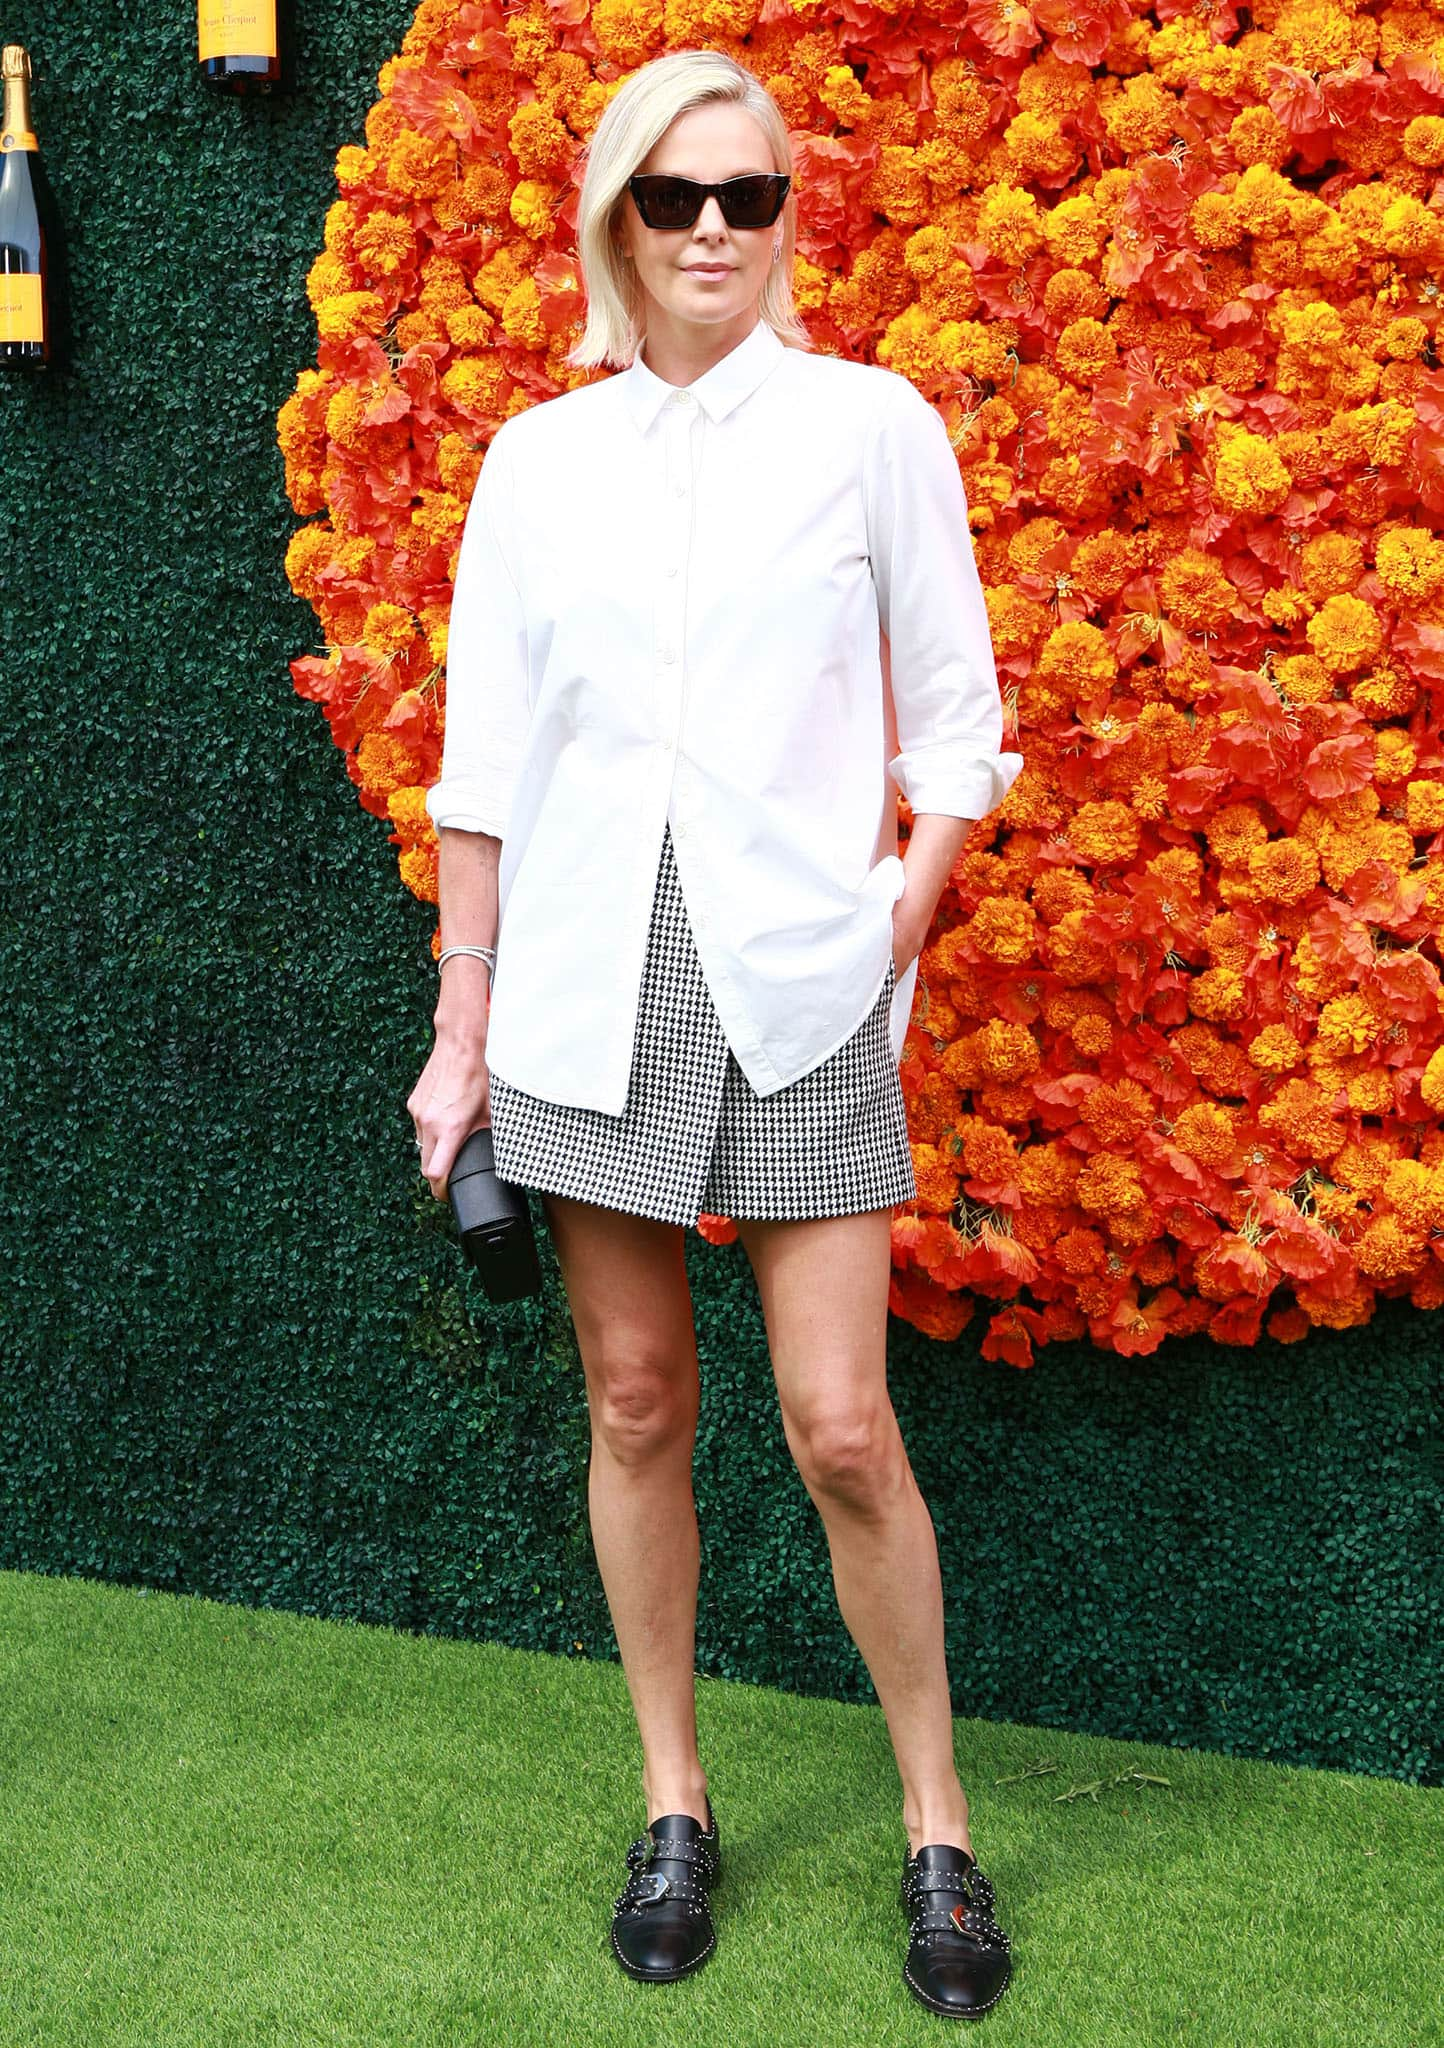 Charlize Theron flaunts her legs in a houndstooth mini skirt with a basic white shirt